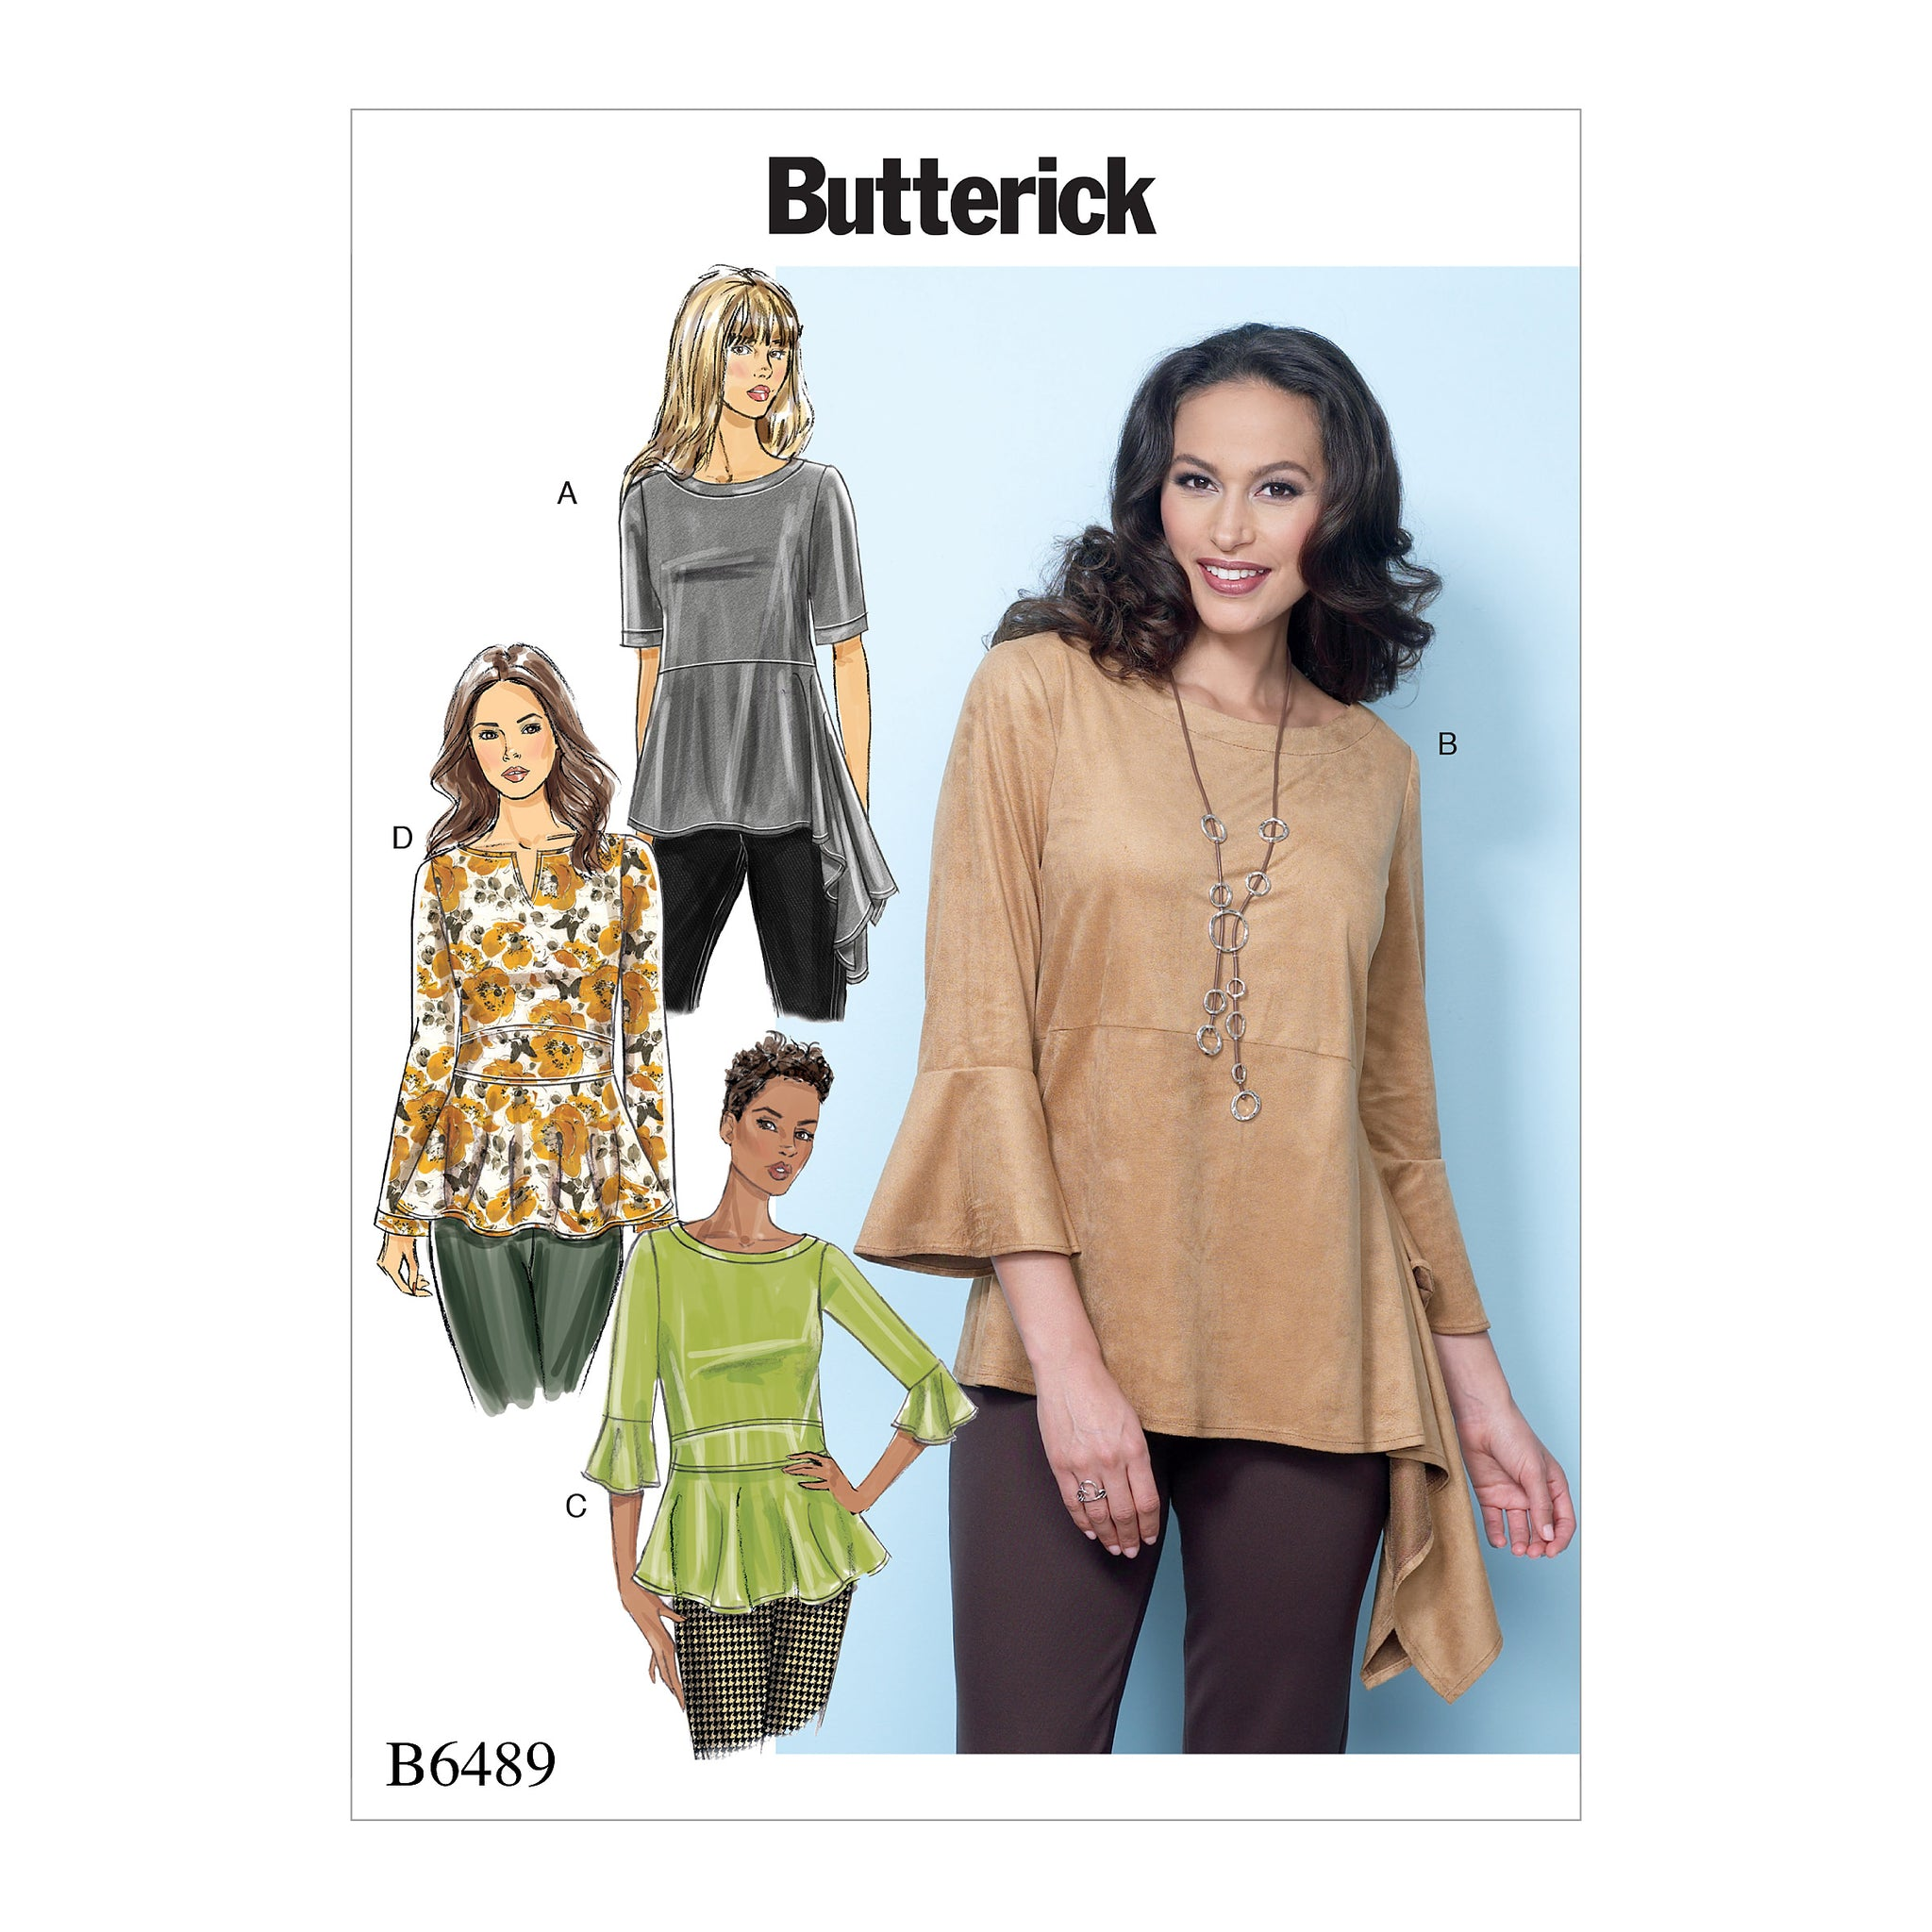 Butterick B64890Y0 Misses' Pullover Tops with Sleeve and Peplum Variations XS-S-M